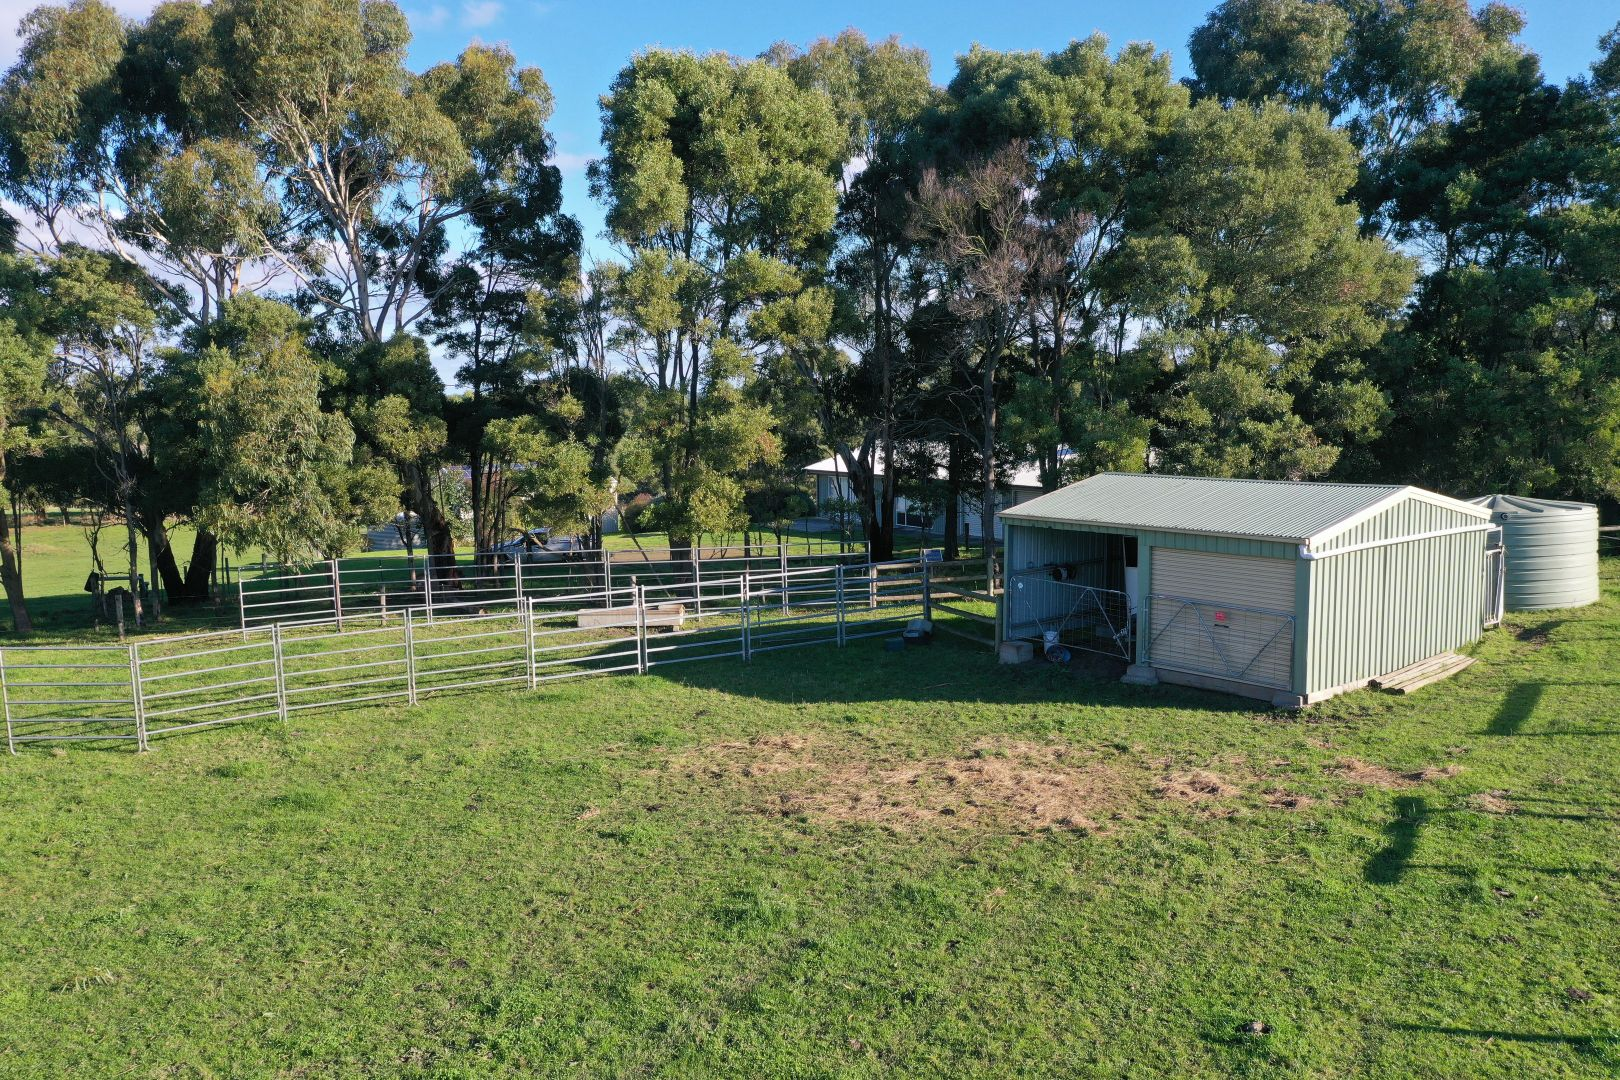 Lot 4/PS 436974 Timboon-Nullawarre Road, Brucknell VIC 3268, Image 1